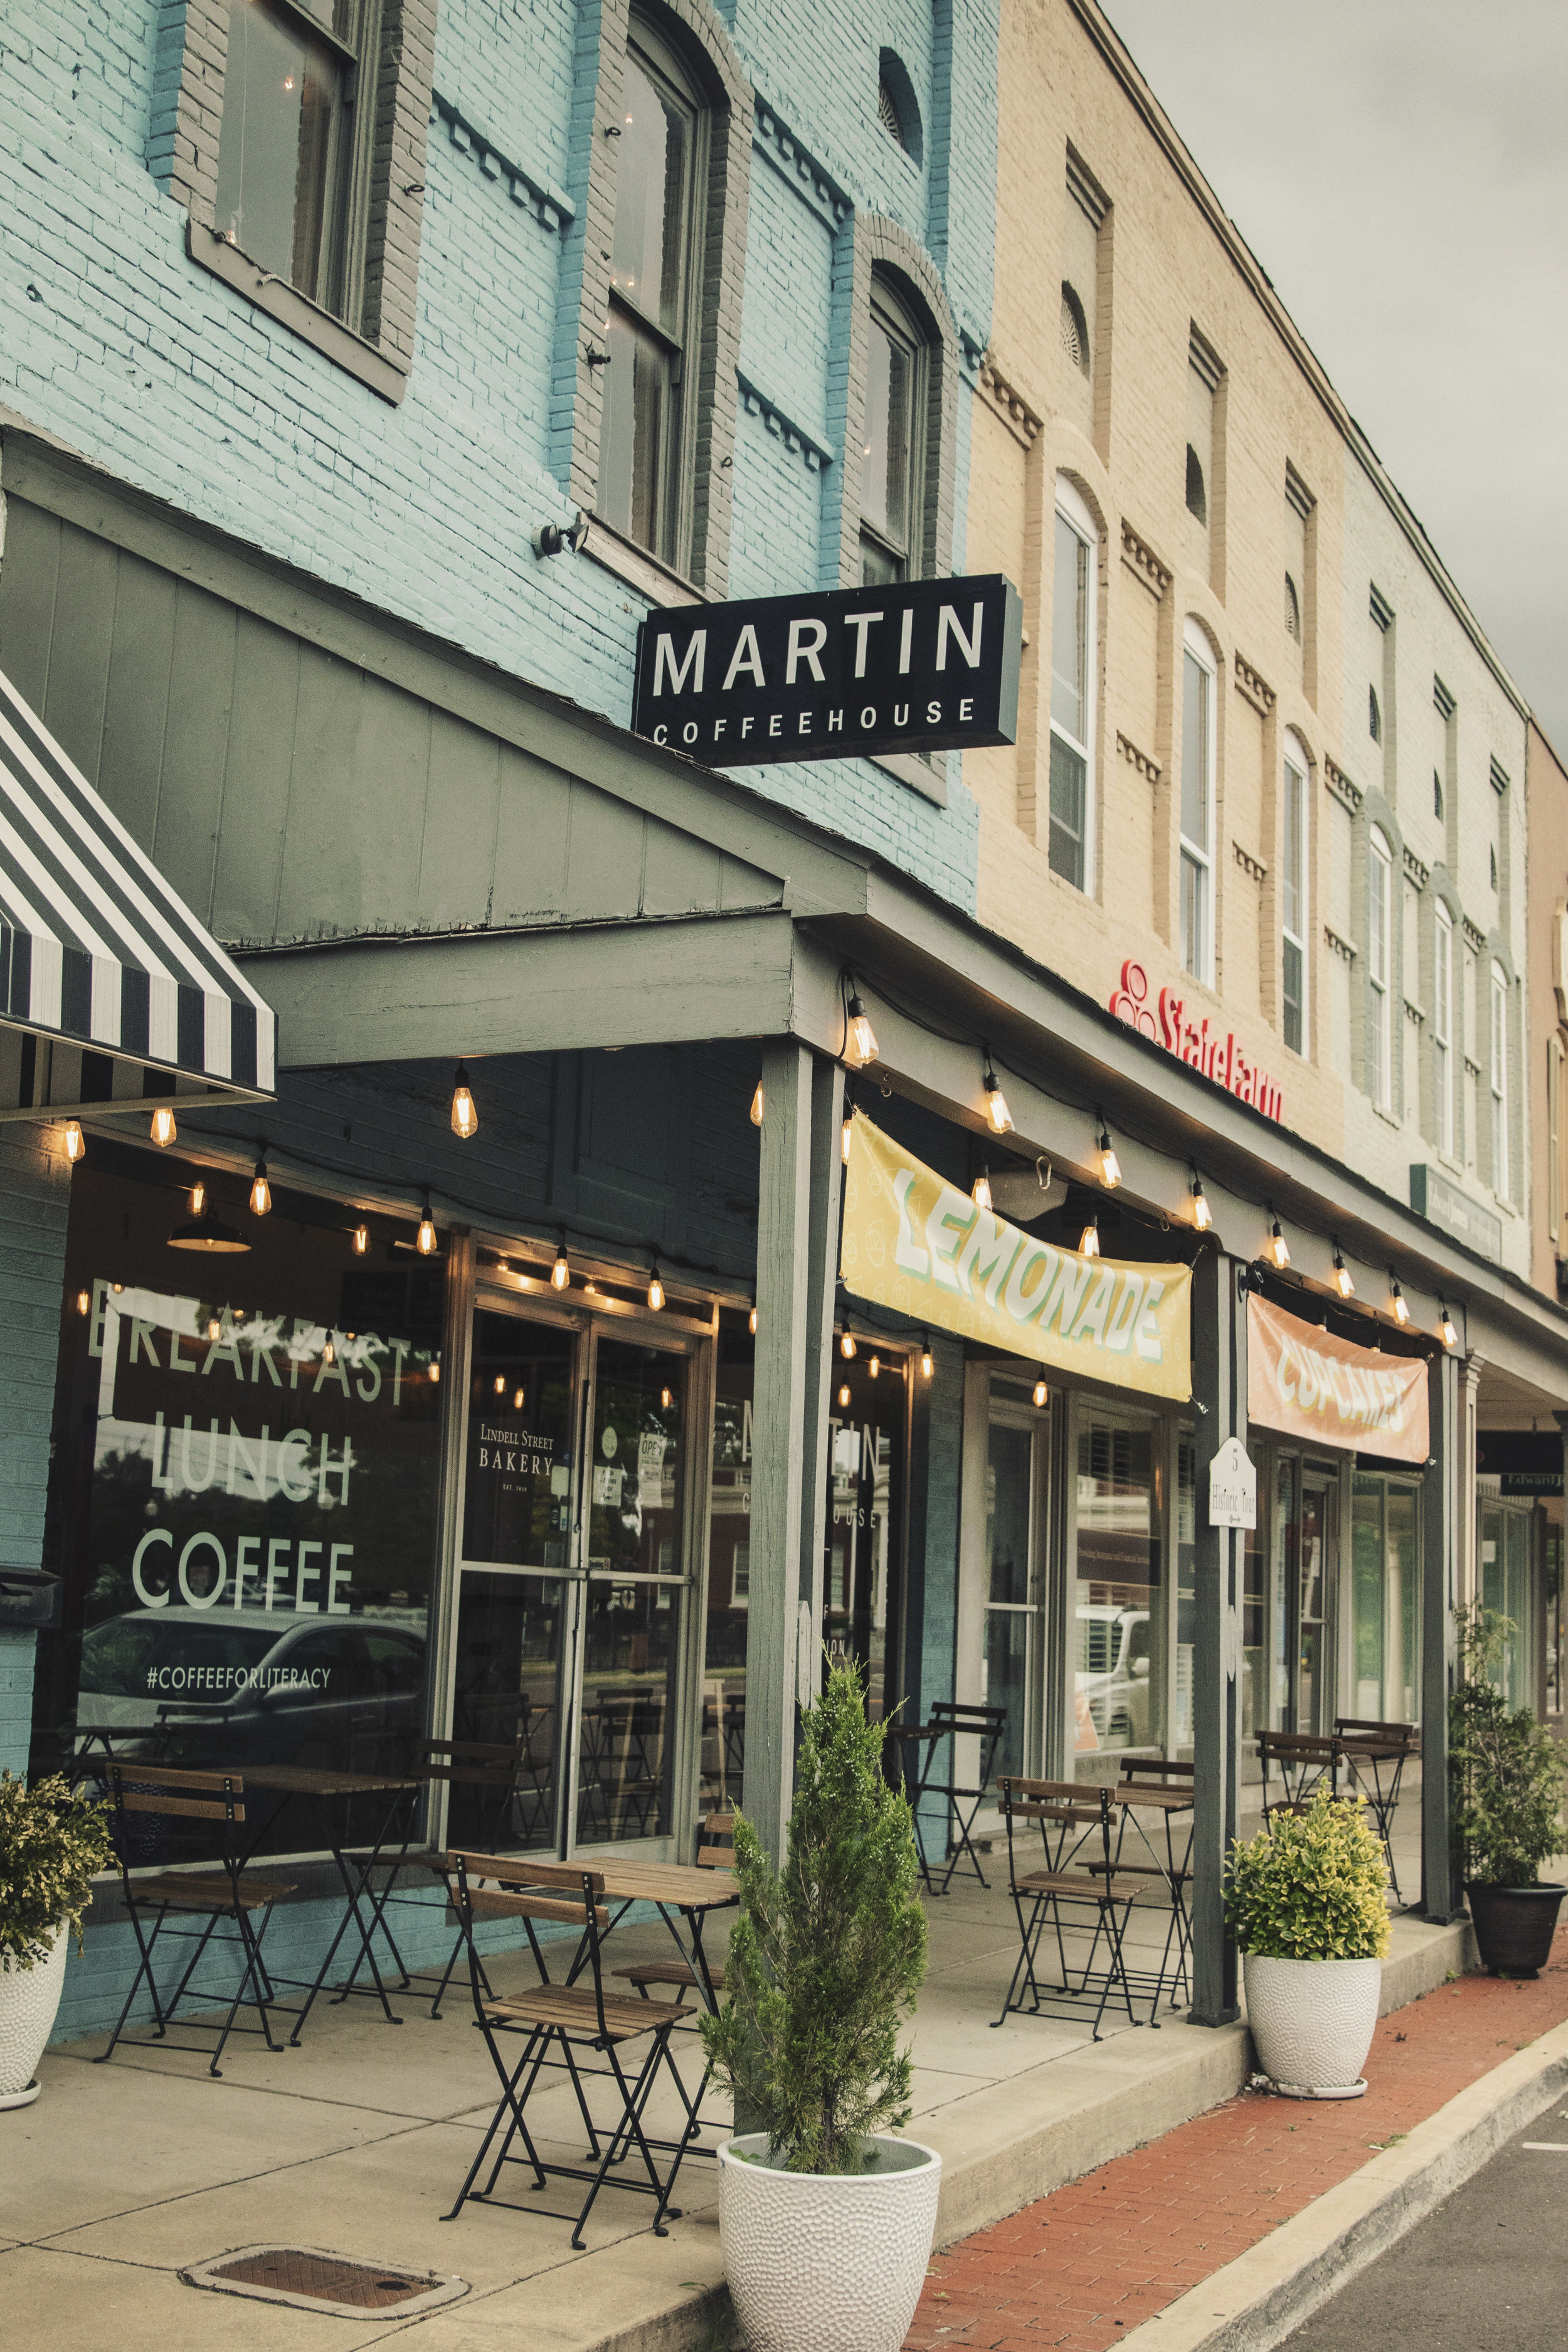 Front of Martin Coffeehouse Building